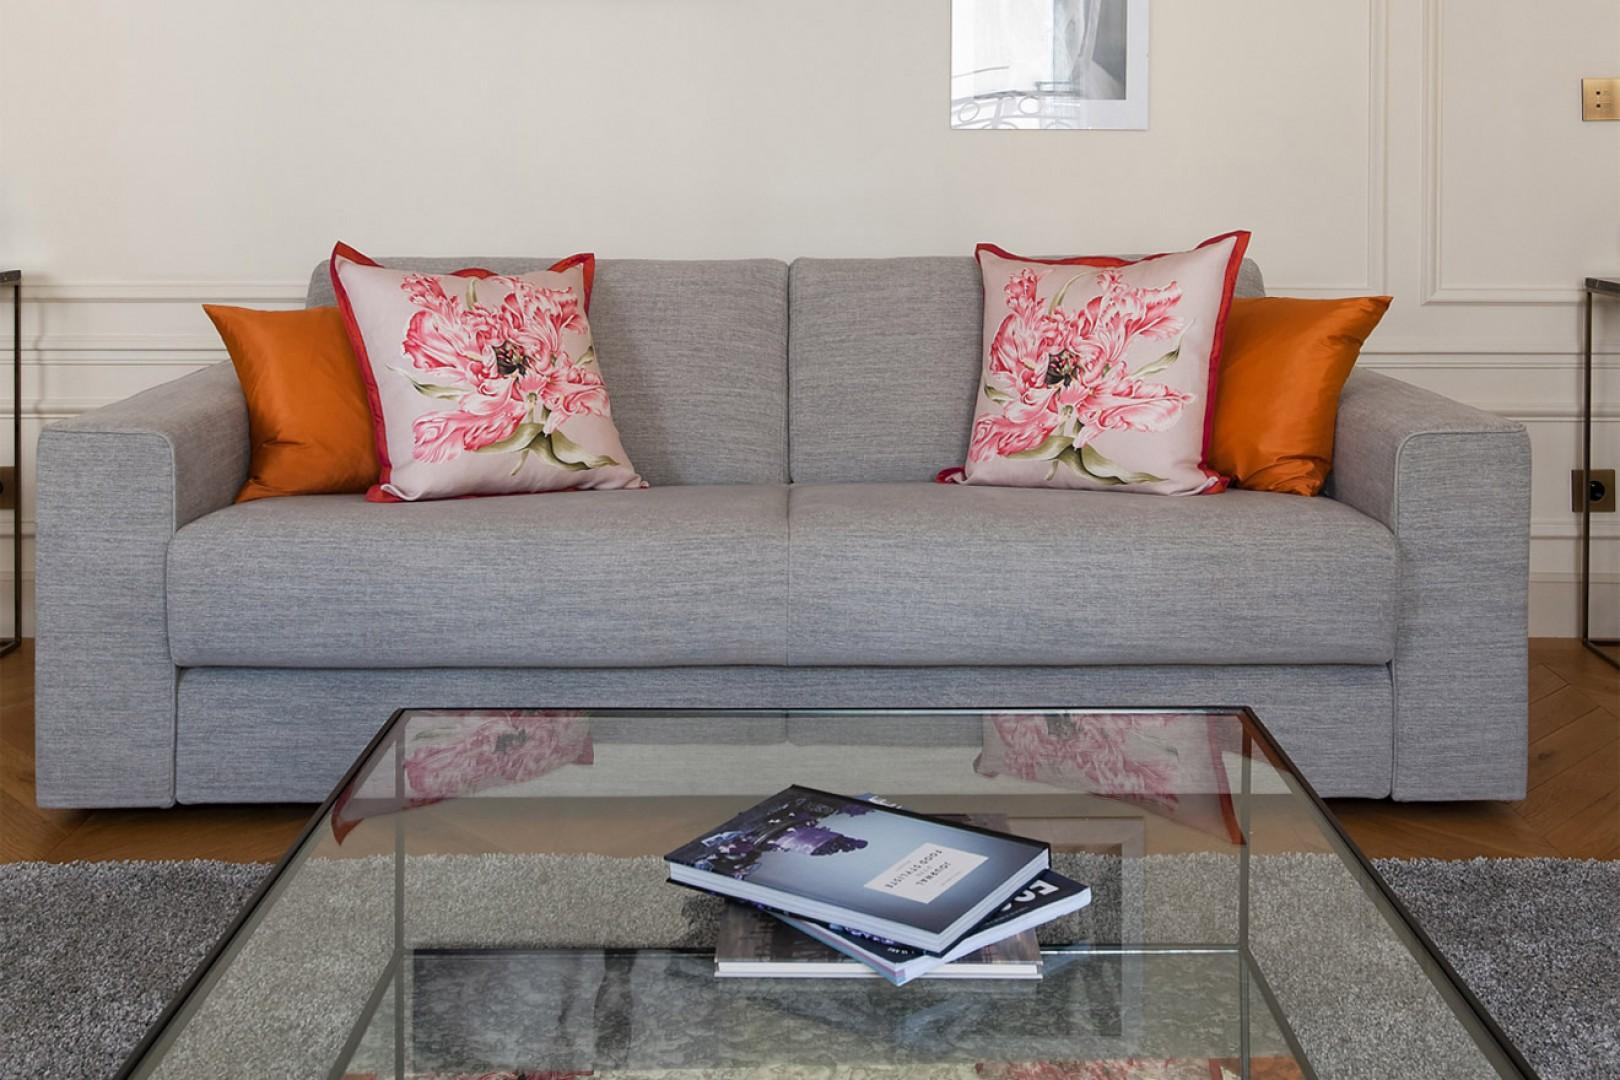 The sofa converts into a comfortable bed for extra guests.